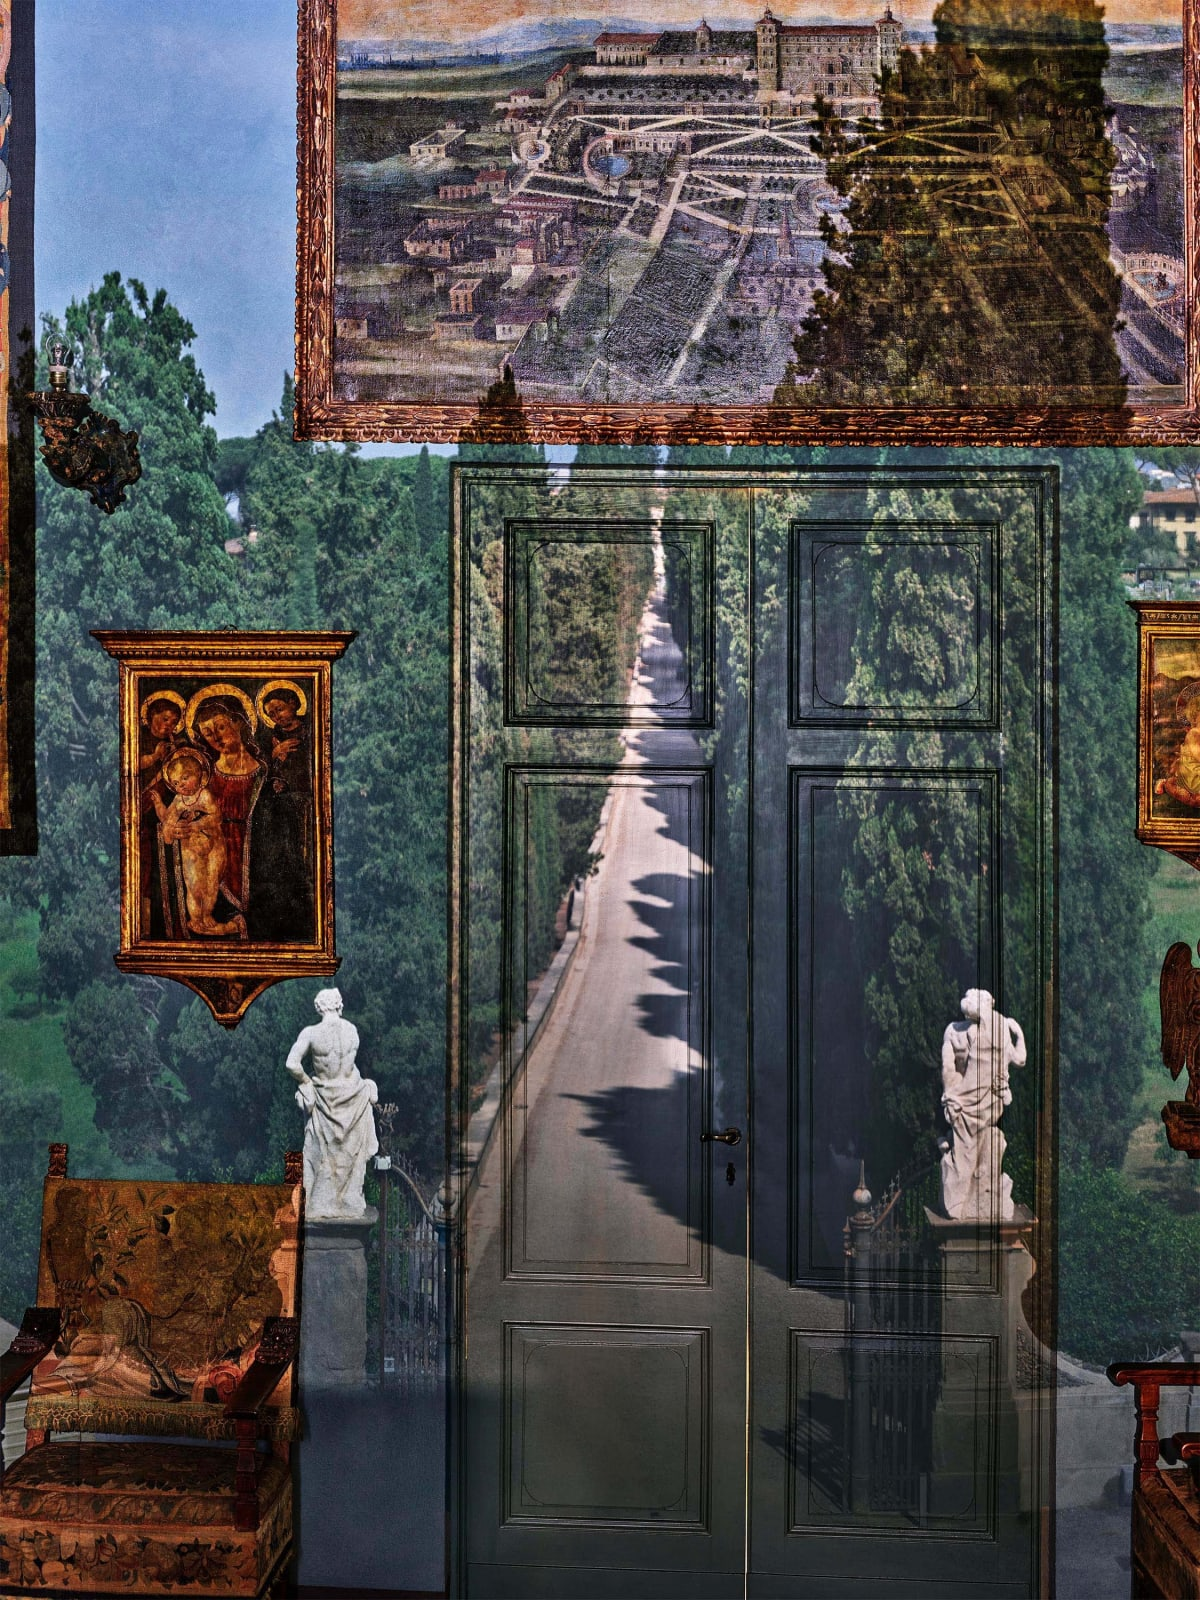 Abelardo Morell Camera Obscura View of Villa Entrance in Blue Gallery Villa la Pietra Florence Italy view of two statues flanking road projected onto wall with Italian paintings